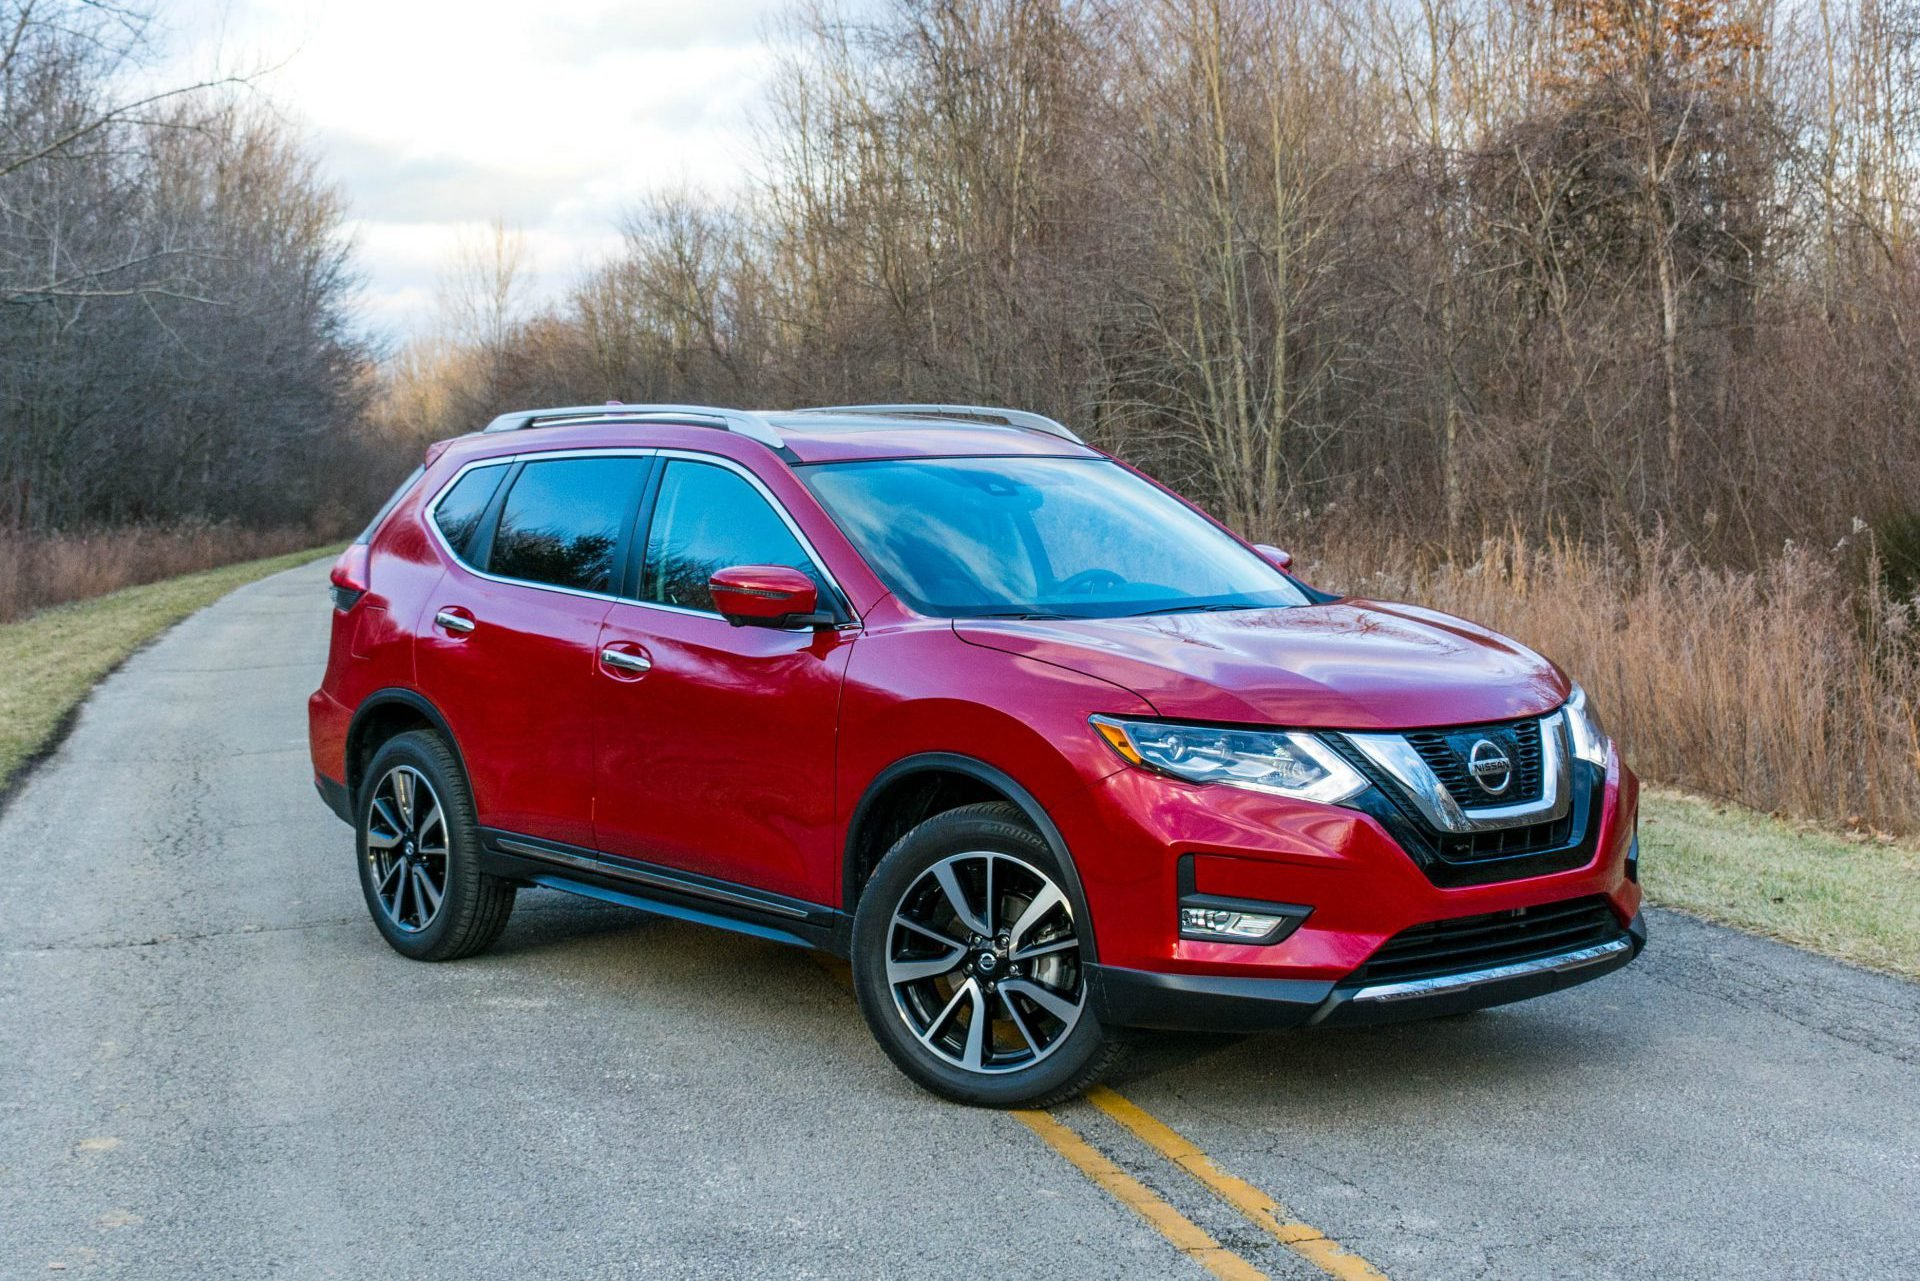 2017 Nissan Rogue SL AWD Review – The Miata of Crossovers ...